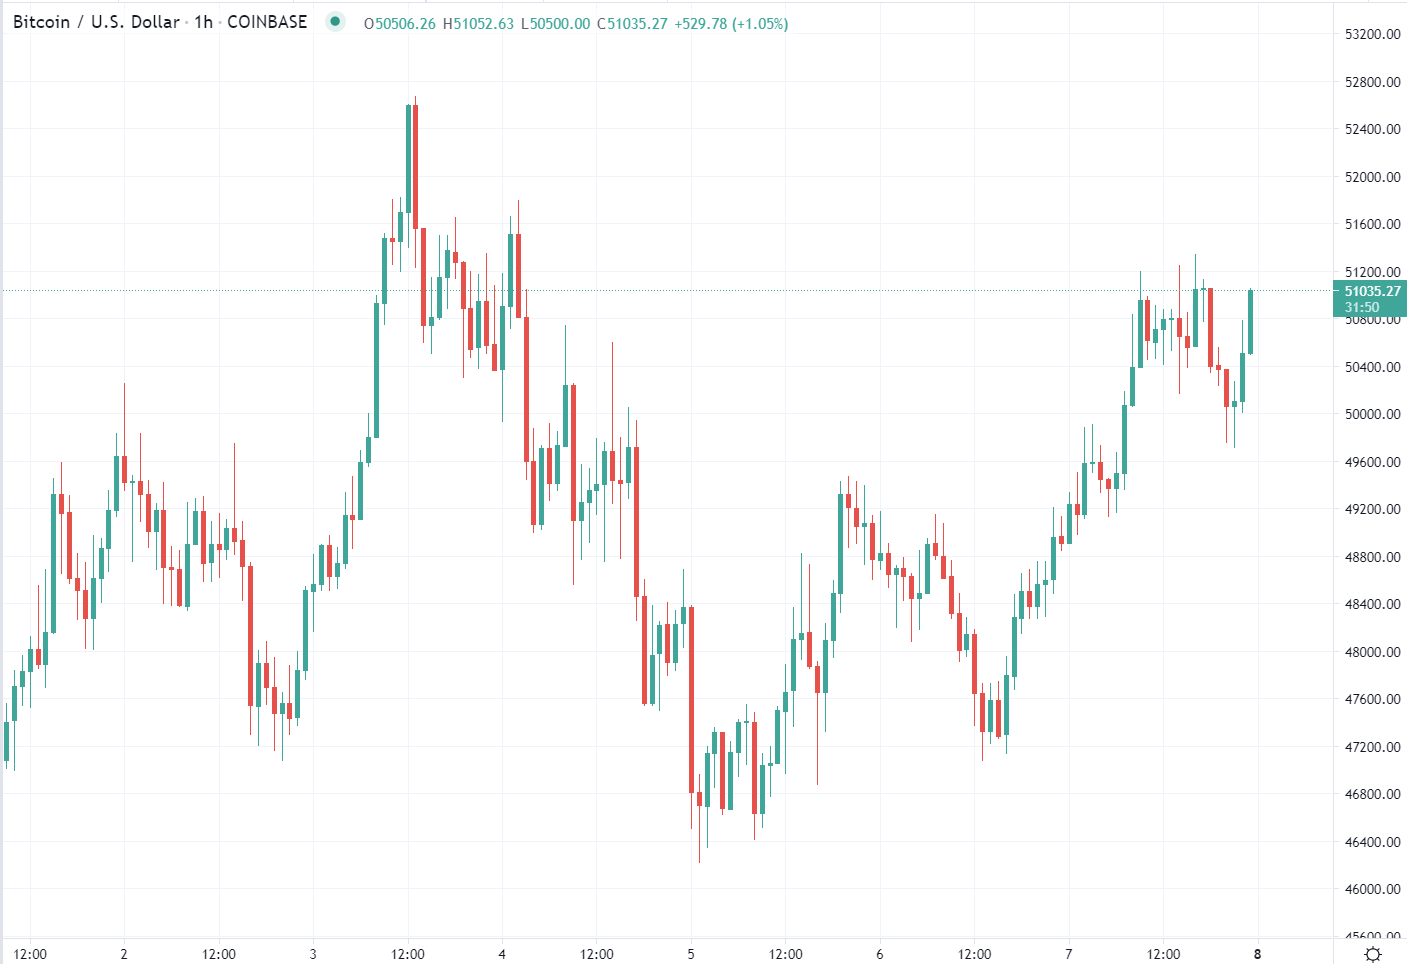 BTC had a good weekend and its extending its gain, currently just above USD51,000